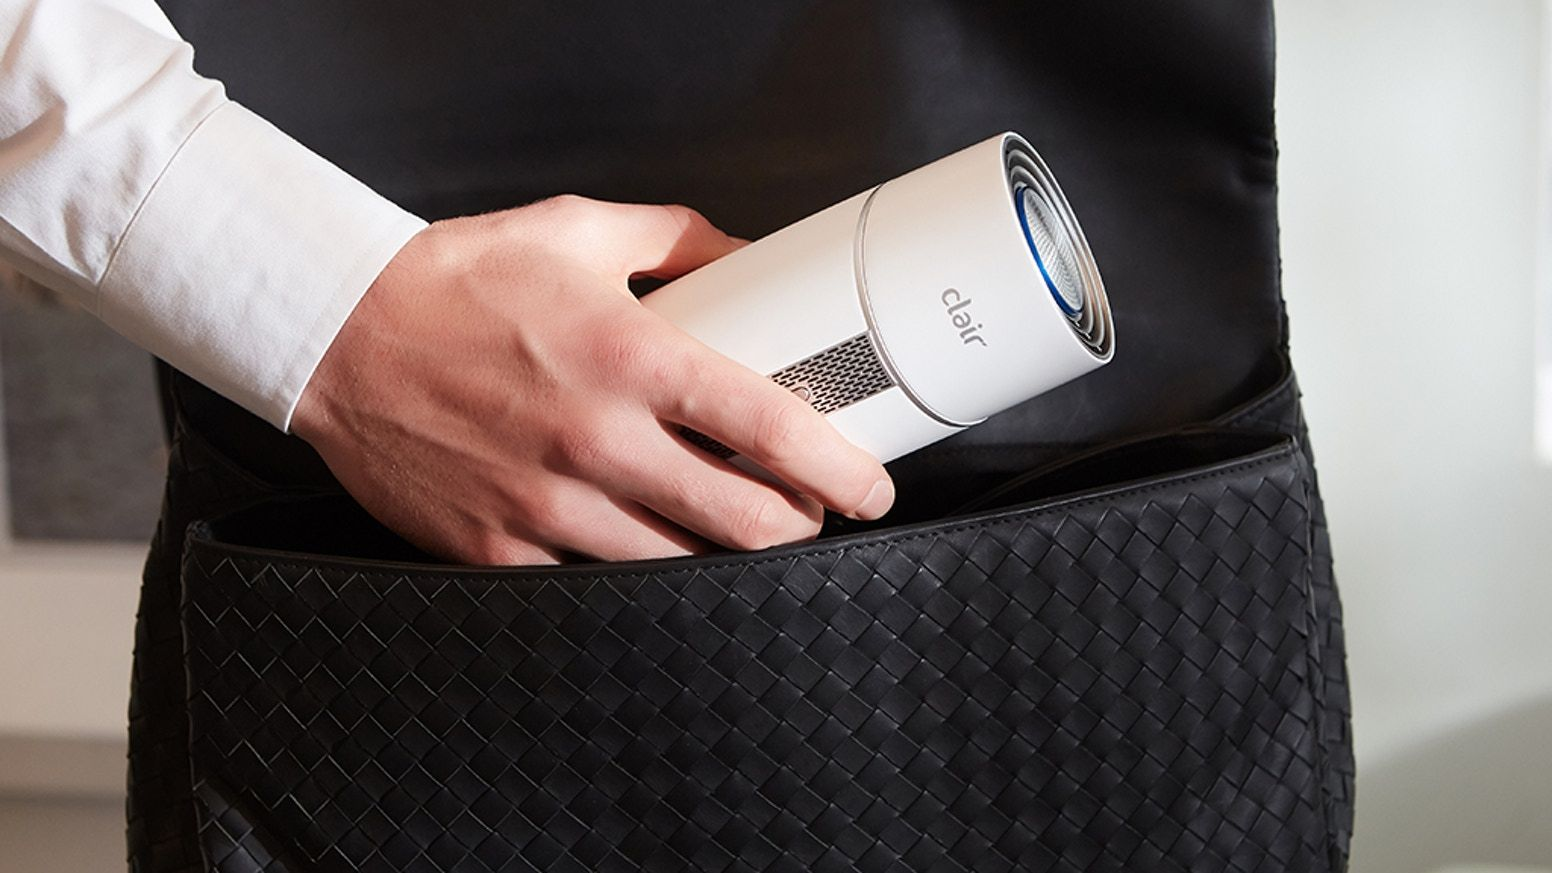 The personal air purifier with 180degree air vent